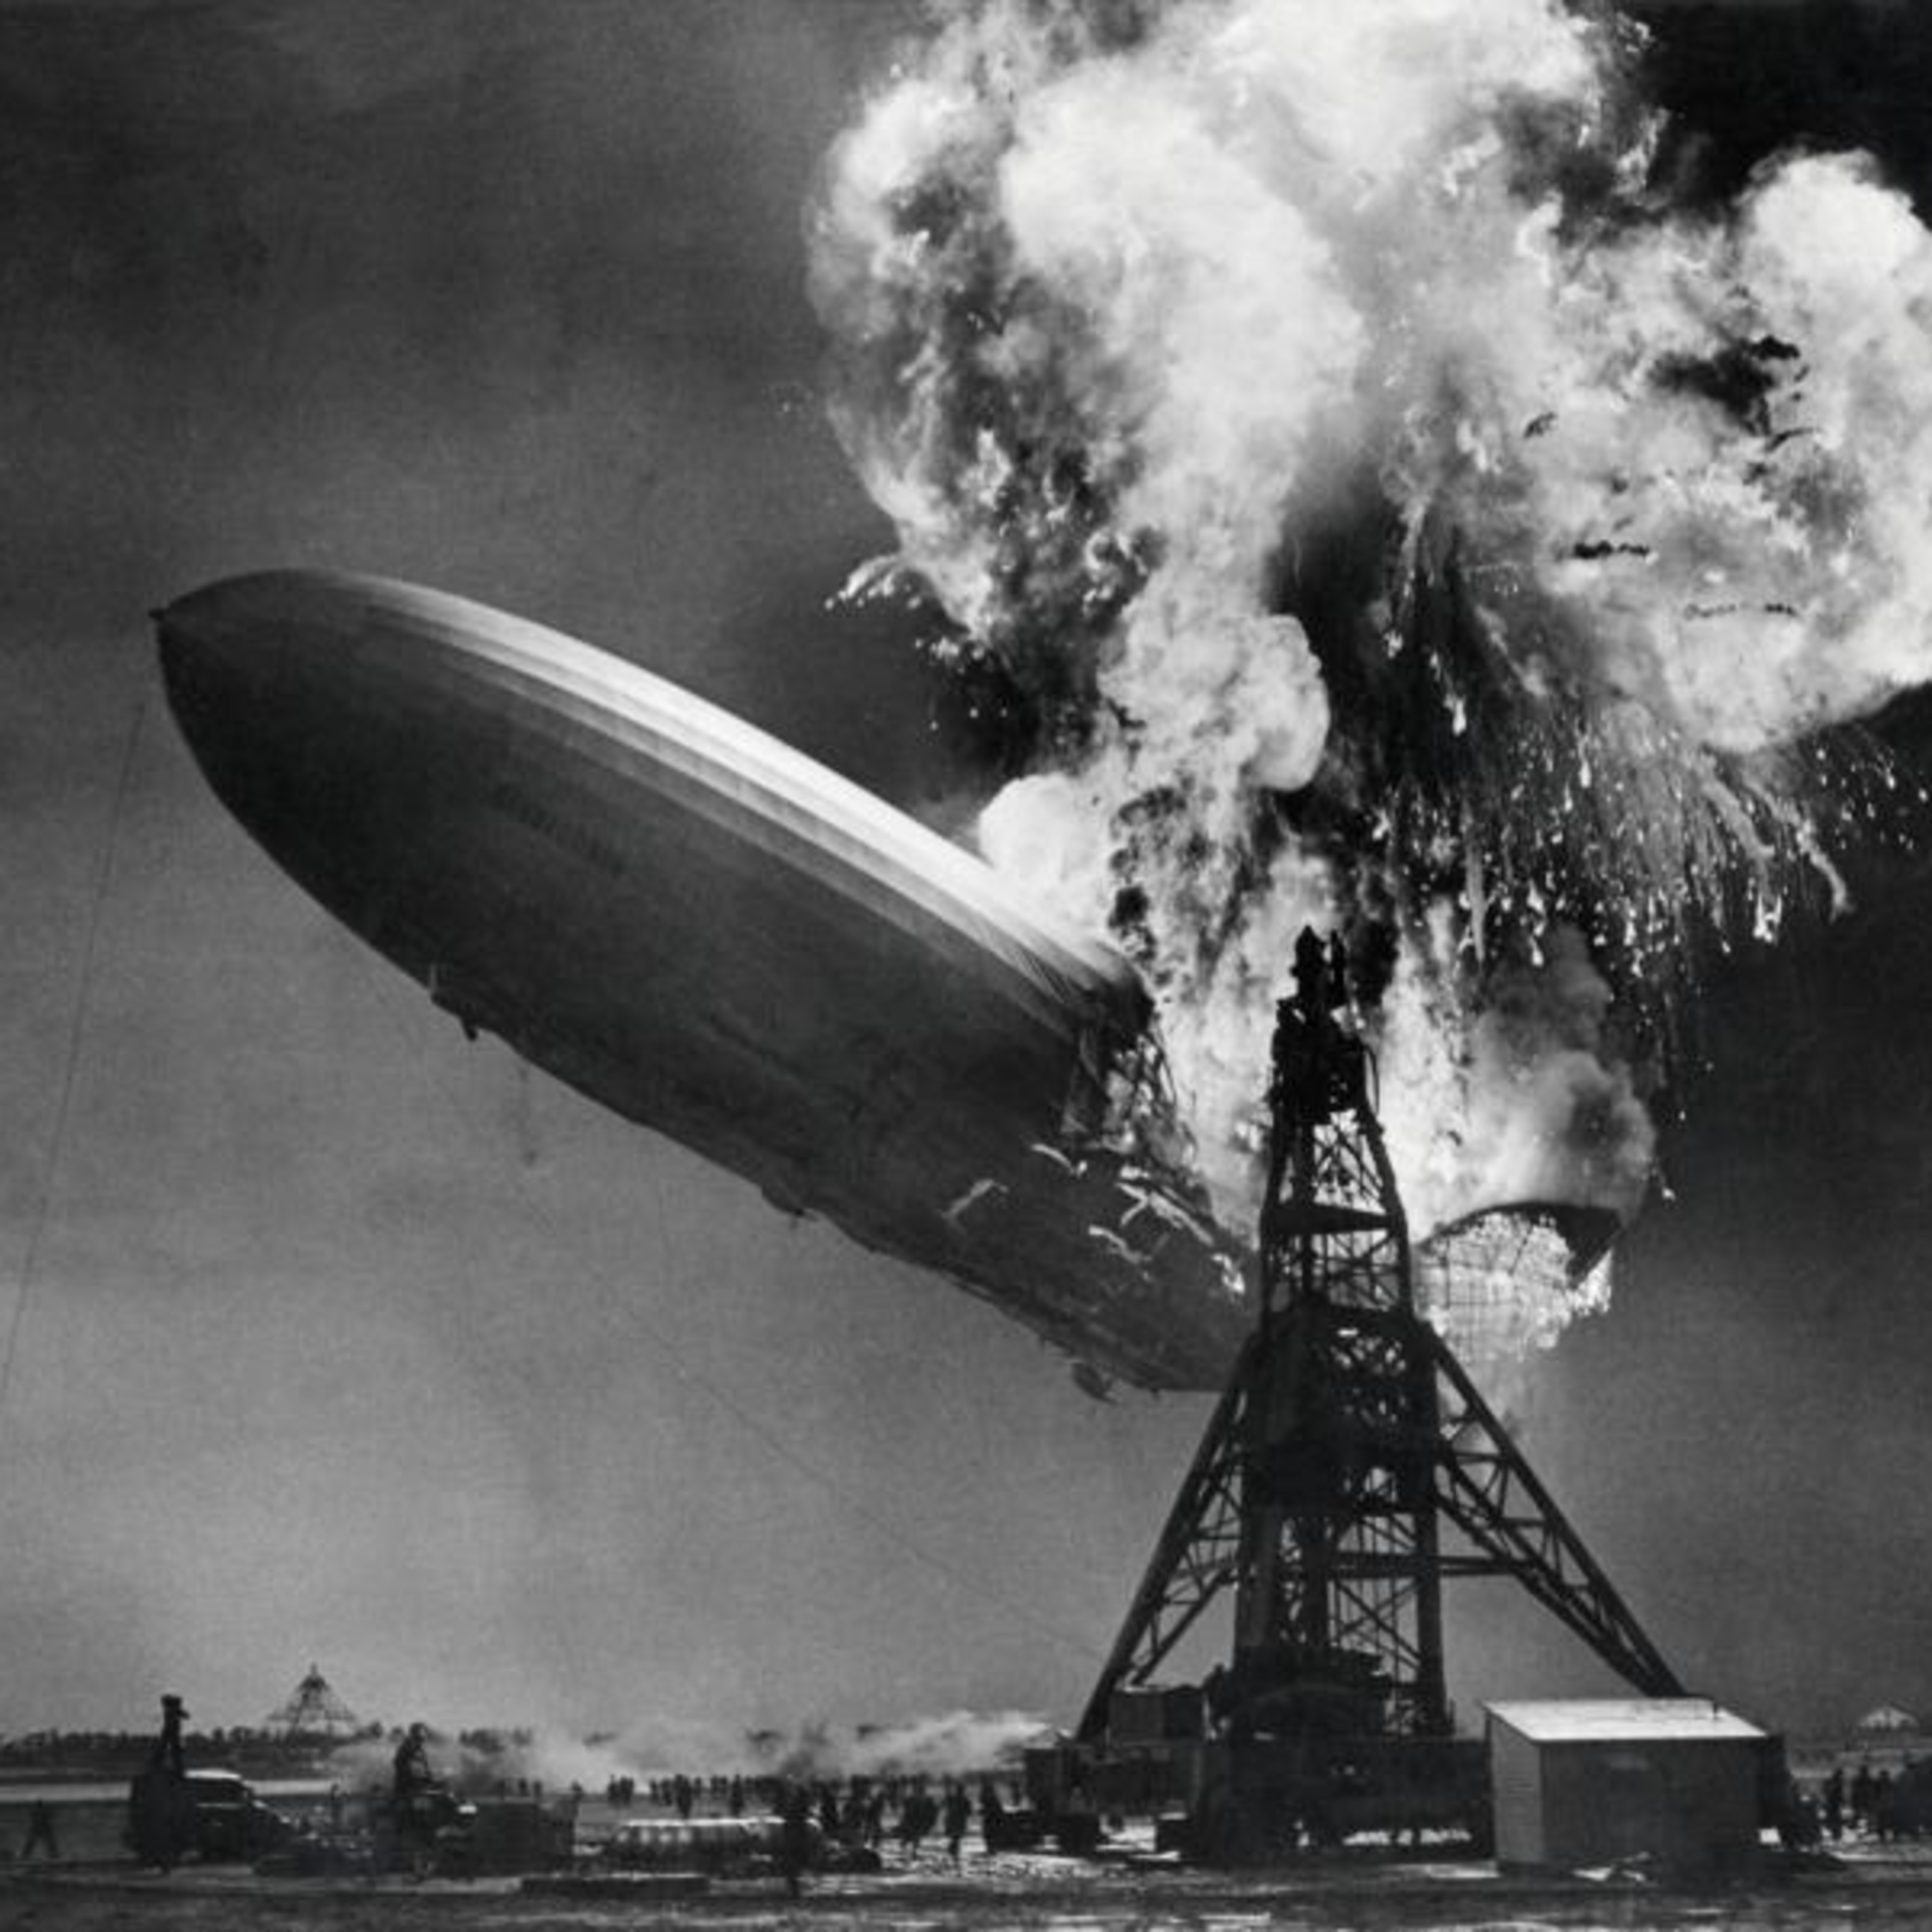 The Hindenberg Arrival in Lakehurst NewJersey, 1937 radio broadcast.